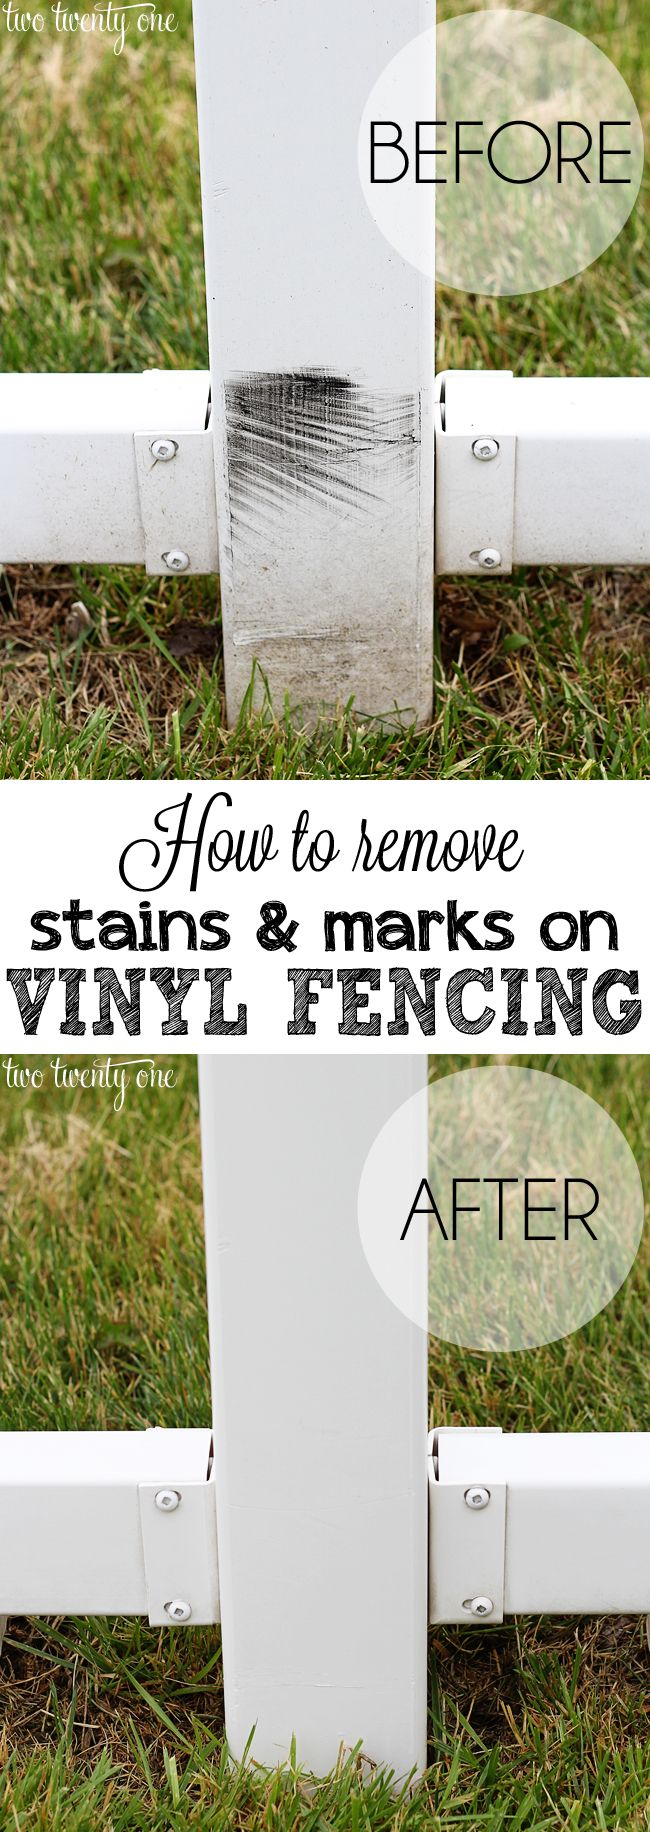 Fast and easy way to get stains and marks off vinyl fencing.